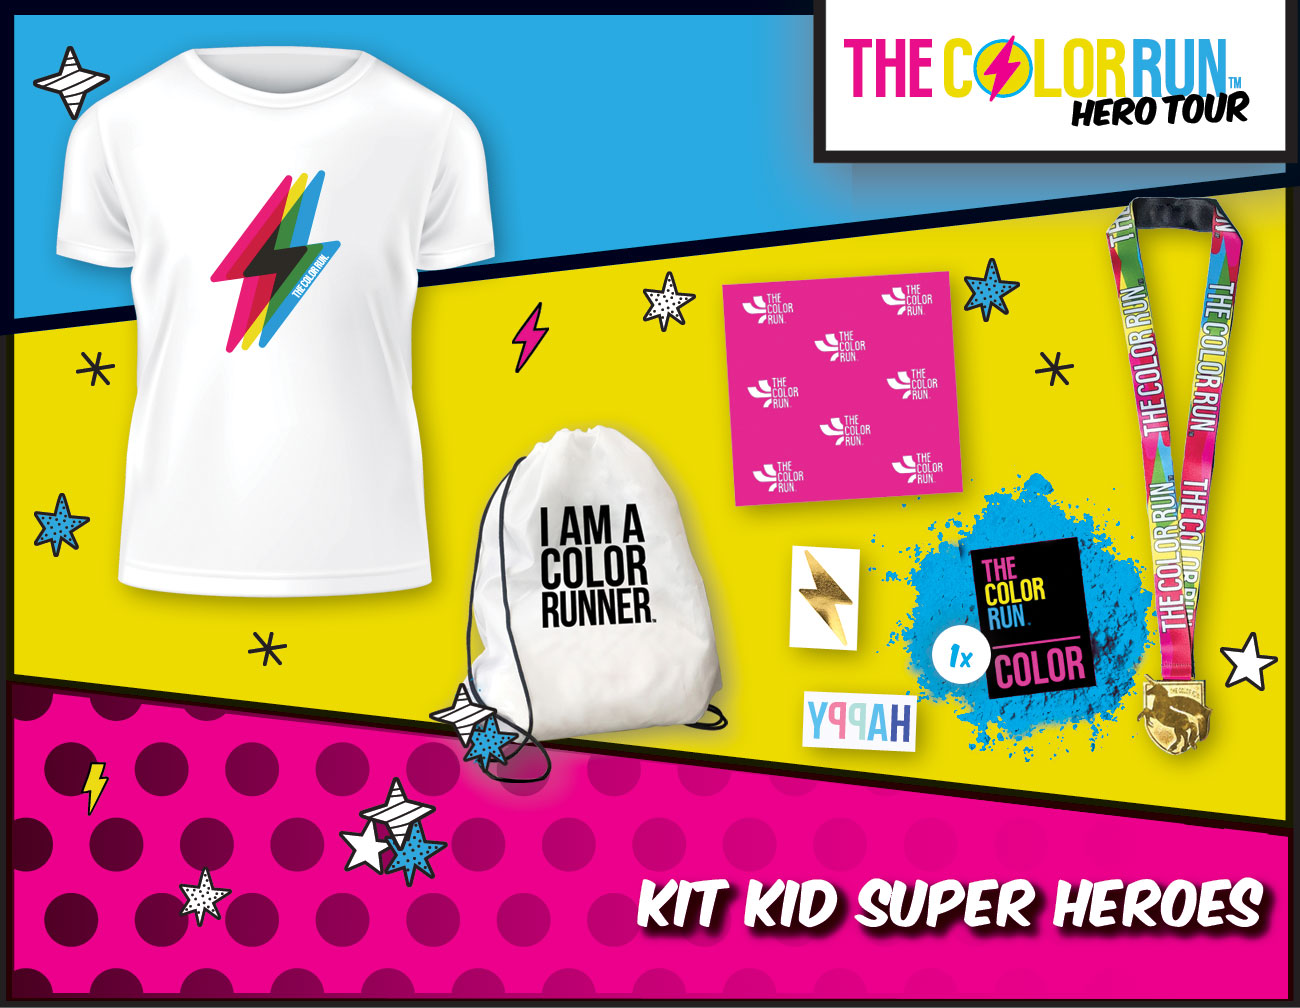 kid Super heroes Participant Kit